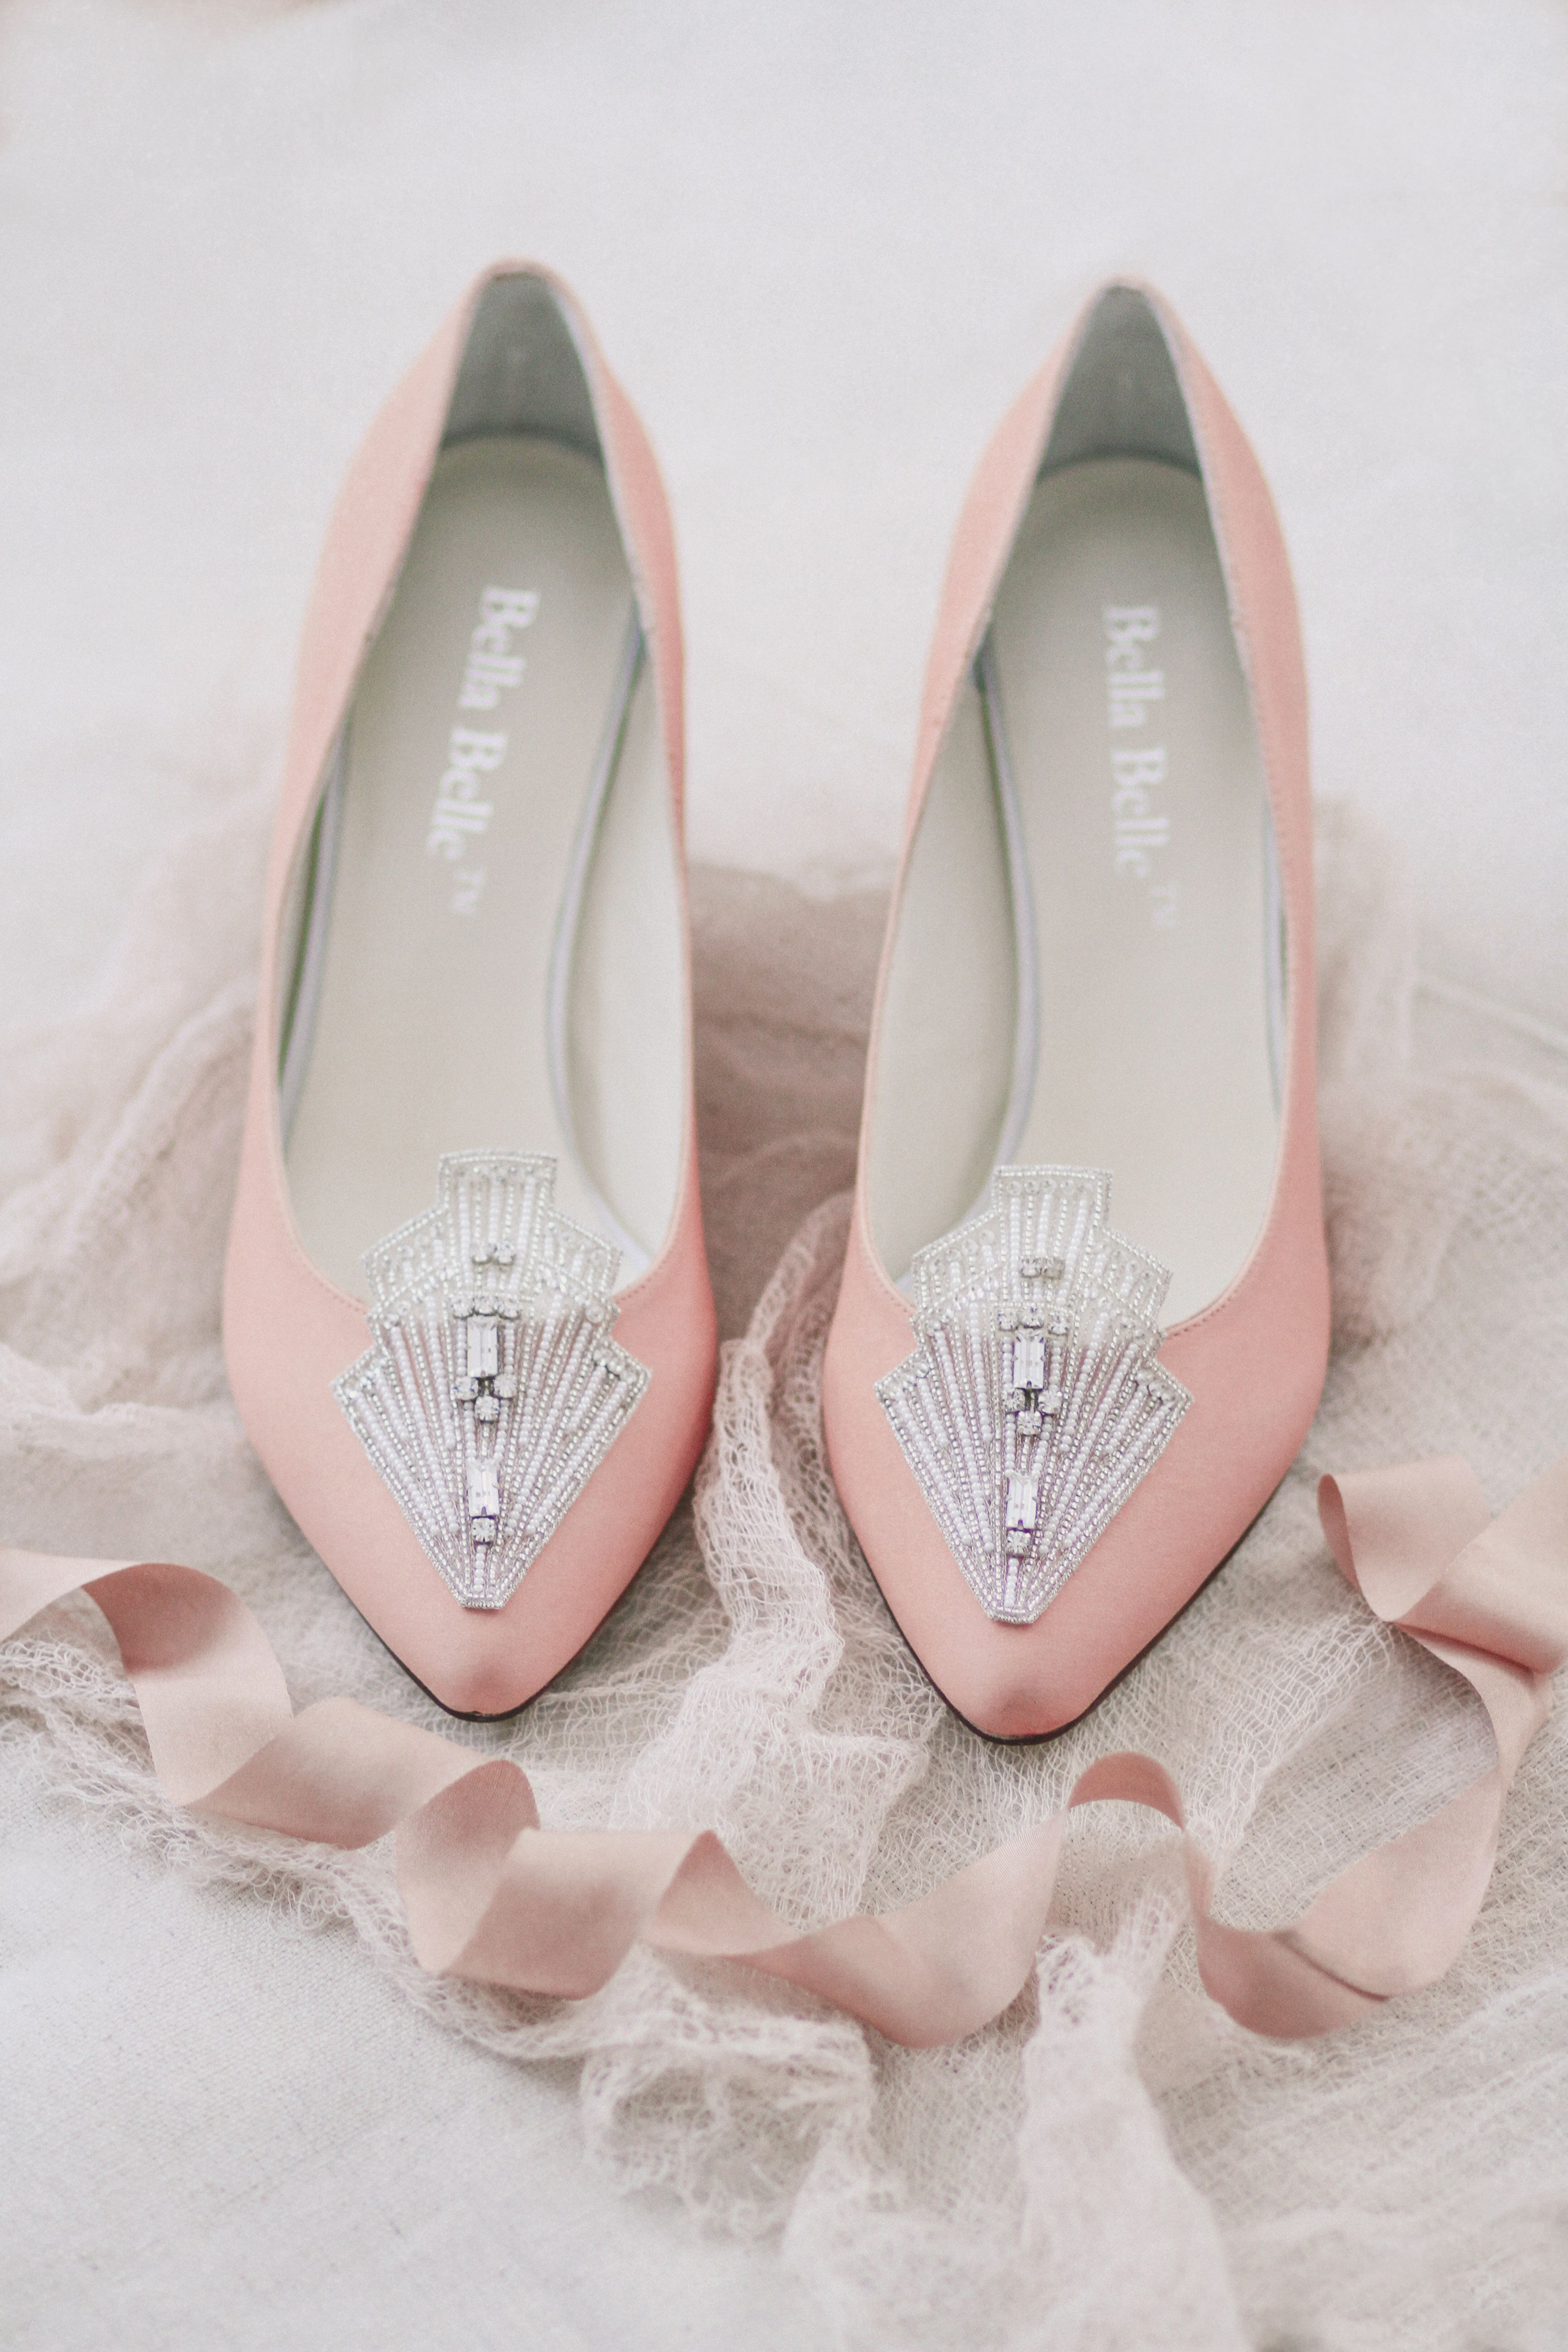 Blush Pink Art Deco Vintage Kitten Heel Wedding Shoes Blush Photography By Justina Bilodeau Wedding Shoes Vintage Wedding Shoes Heels Pink Wedding Shoes